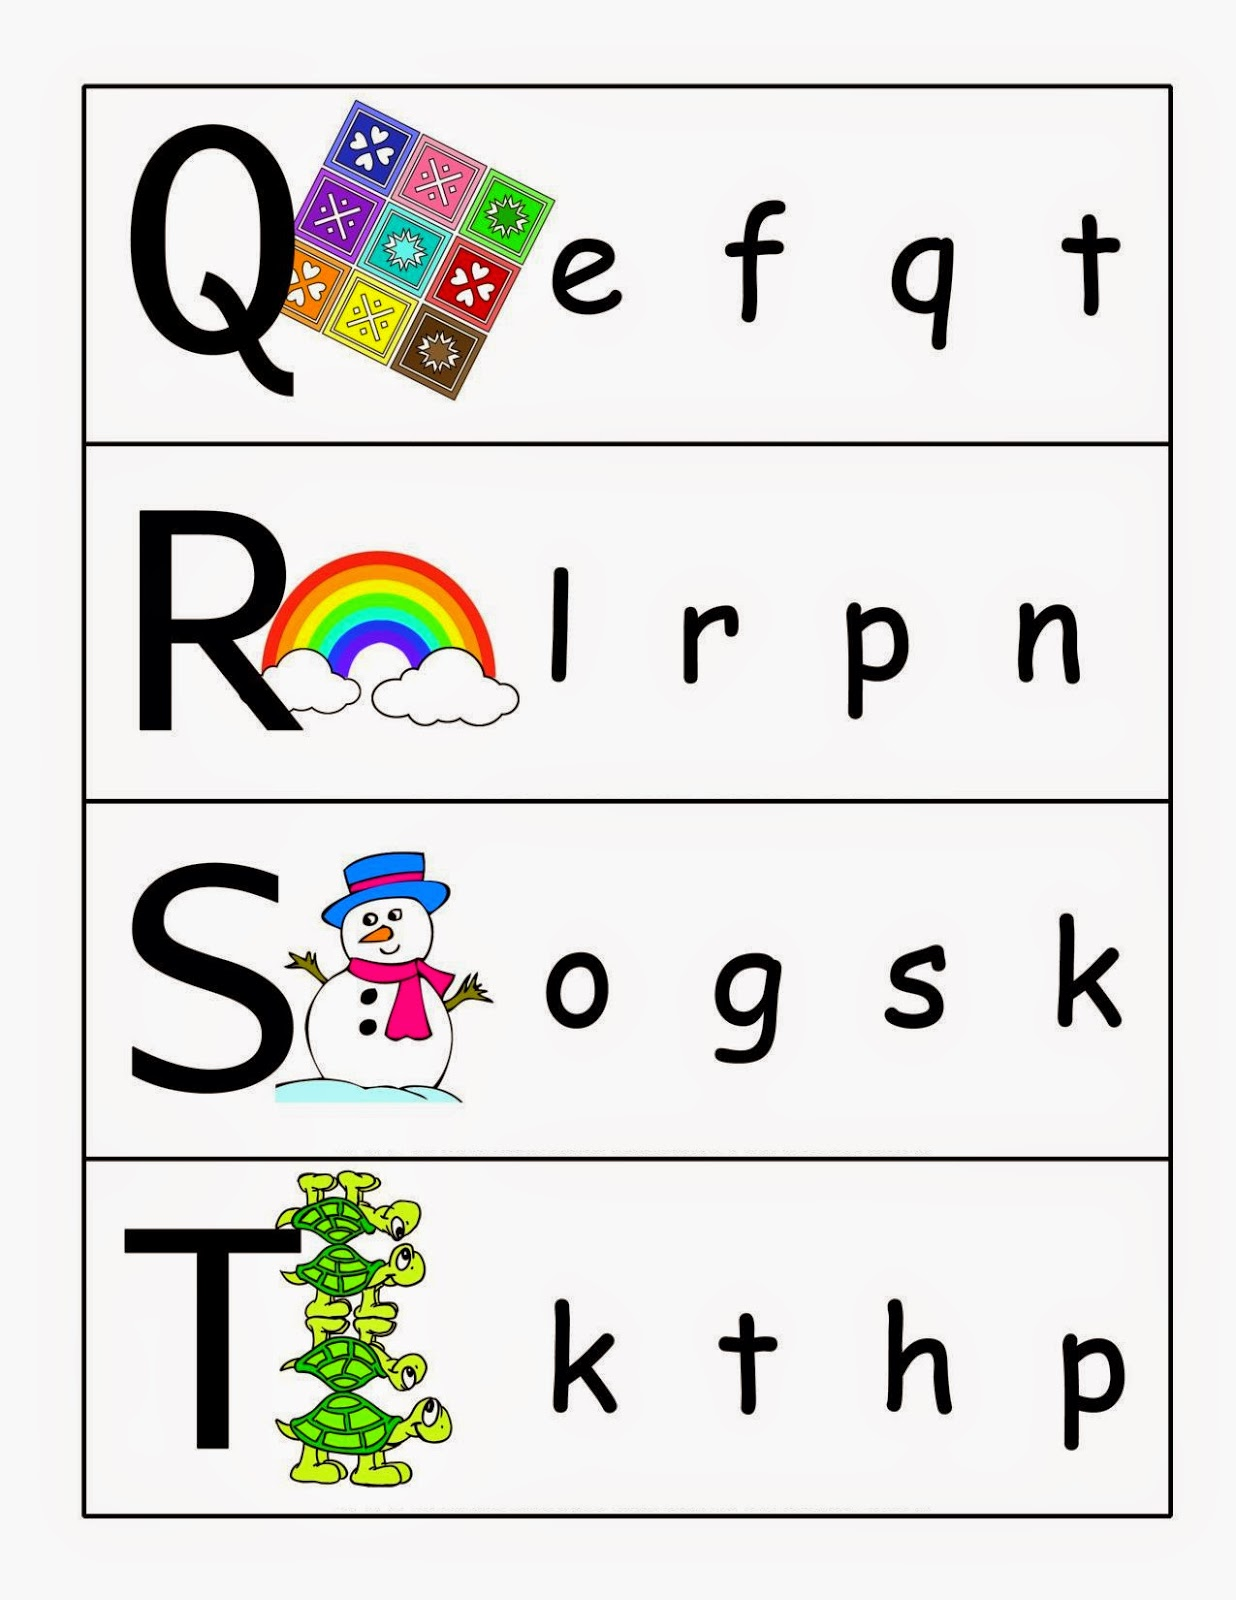 ... Worksheets in addition Long Division Worksheets 4th Grade. on free